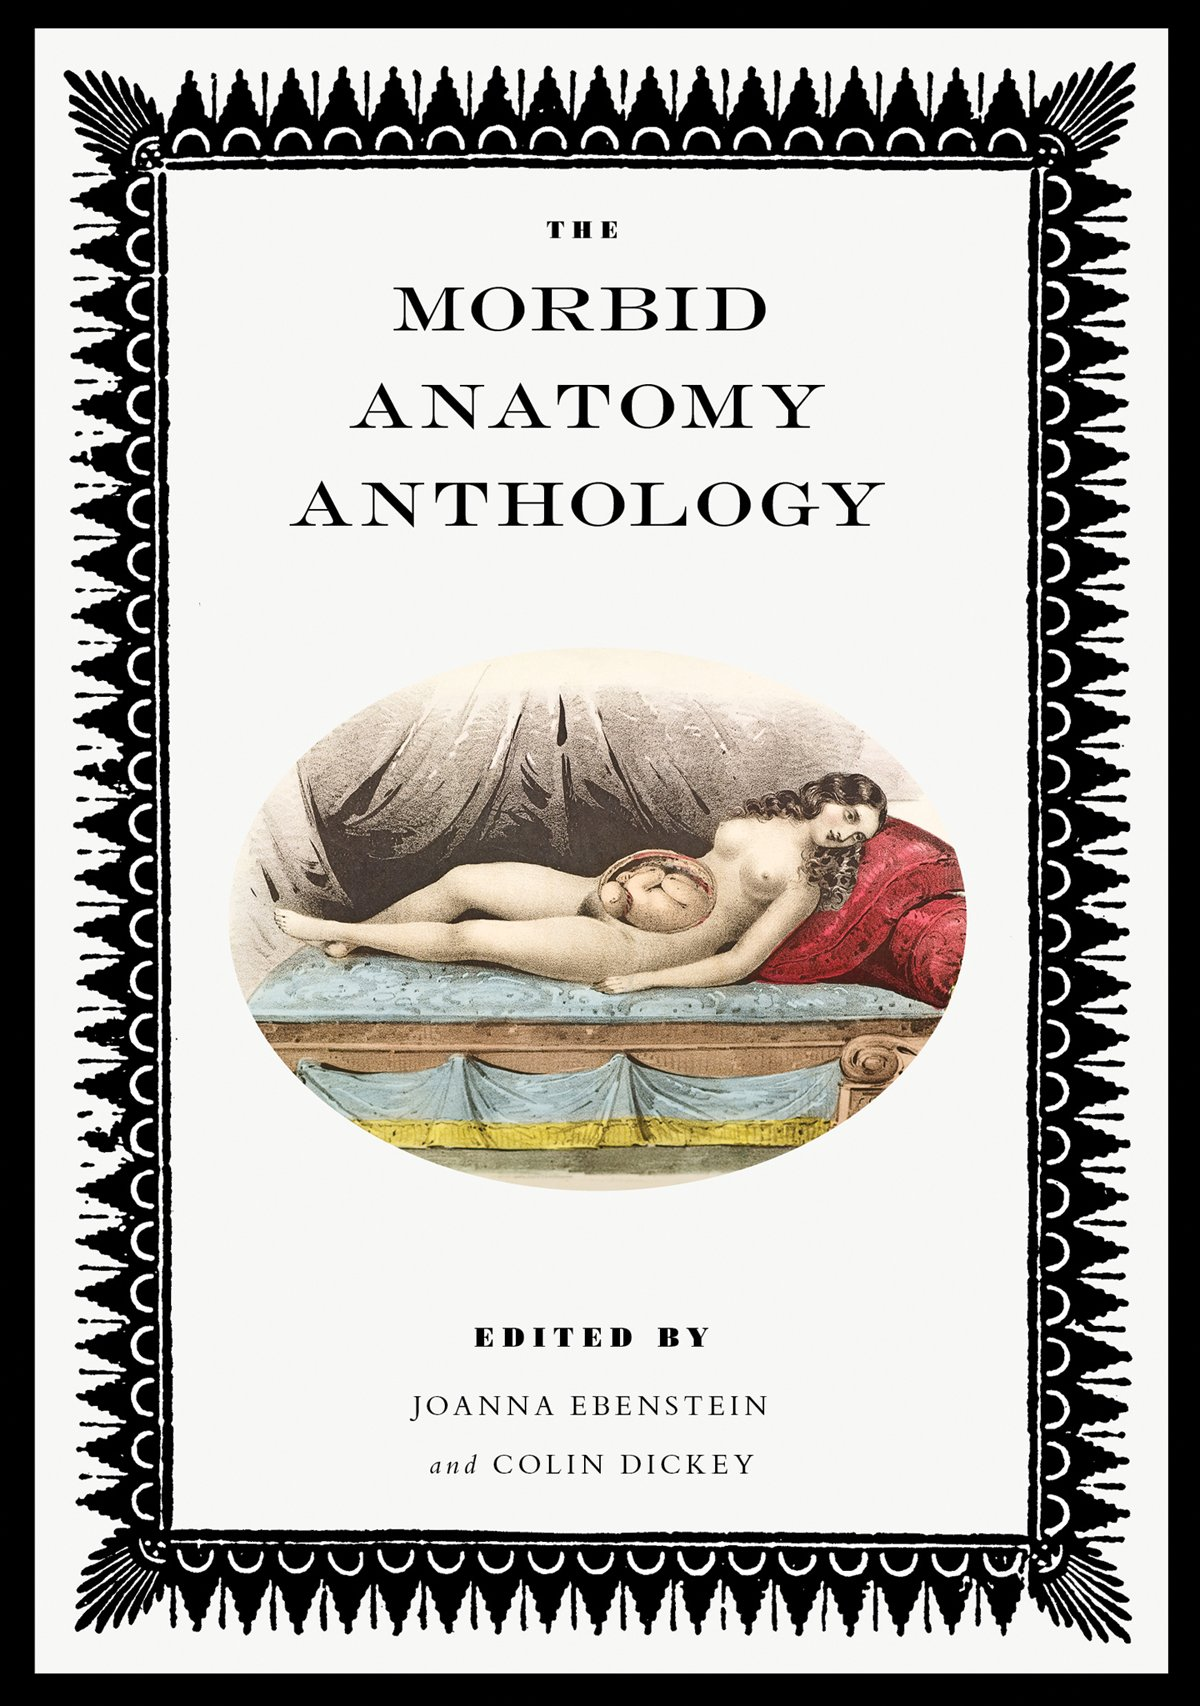 The Morbid Anatomy Anthology: Amazon.co.uk: Joanna Ebenstein ...